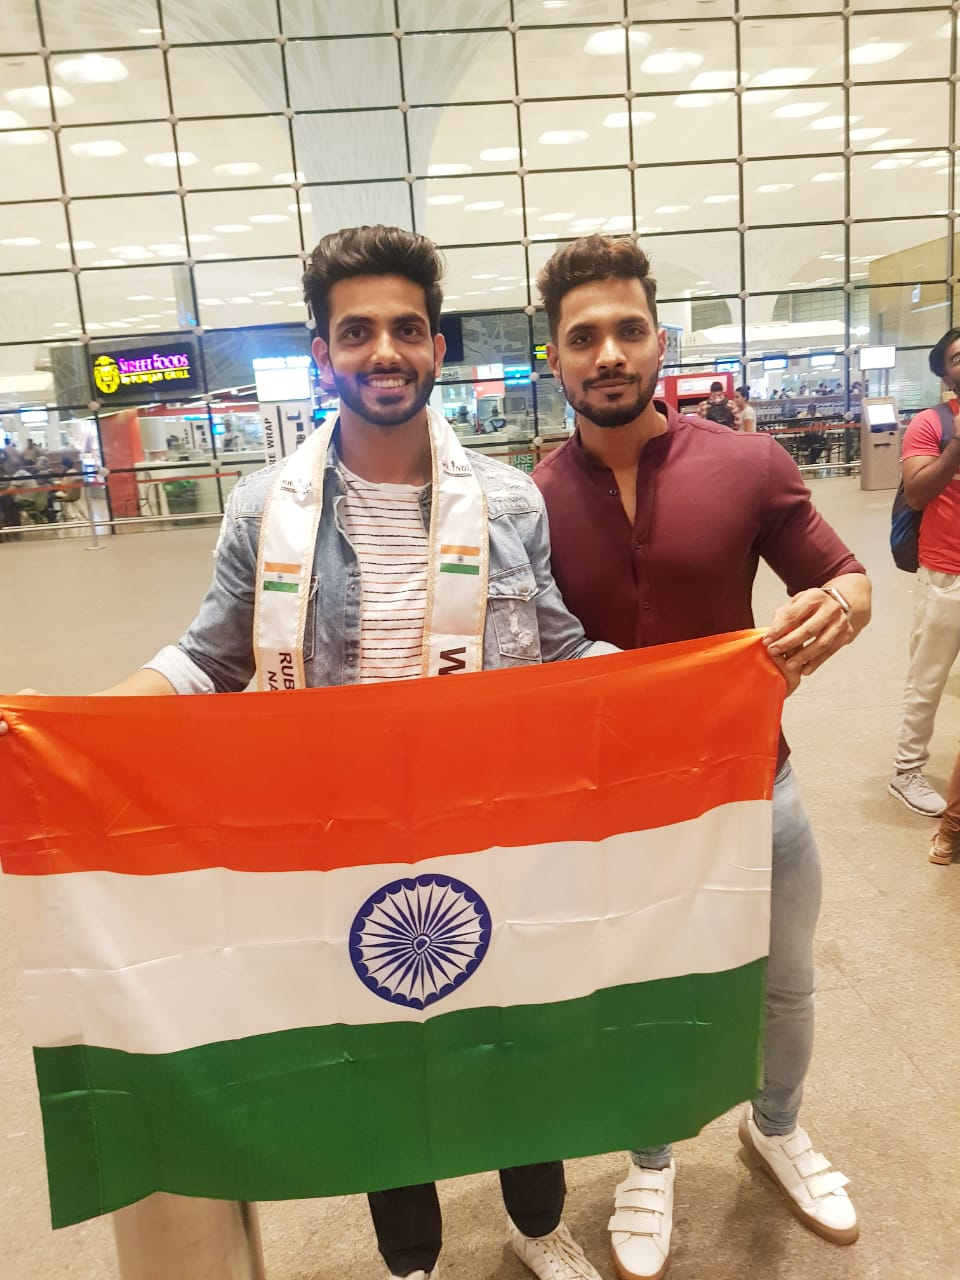 Rubaru Mr India National Universe 2019, Sahil Arora with Rubaru Mr West India 2018, Sagar Amale at the airport in Mumbai.